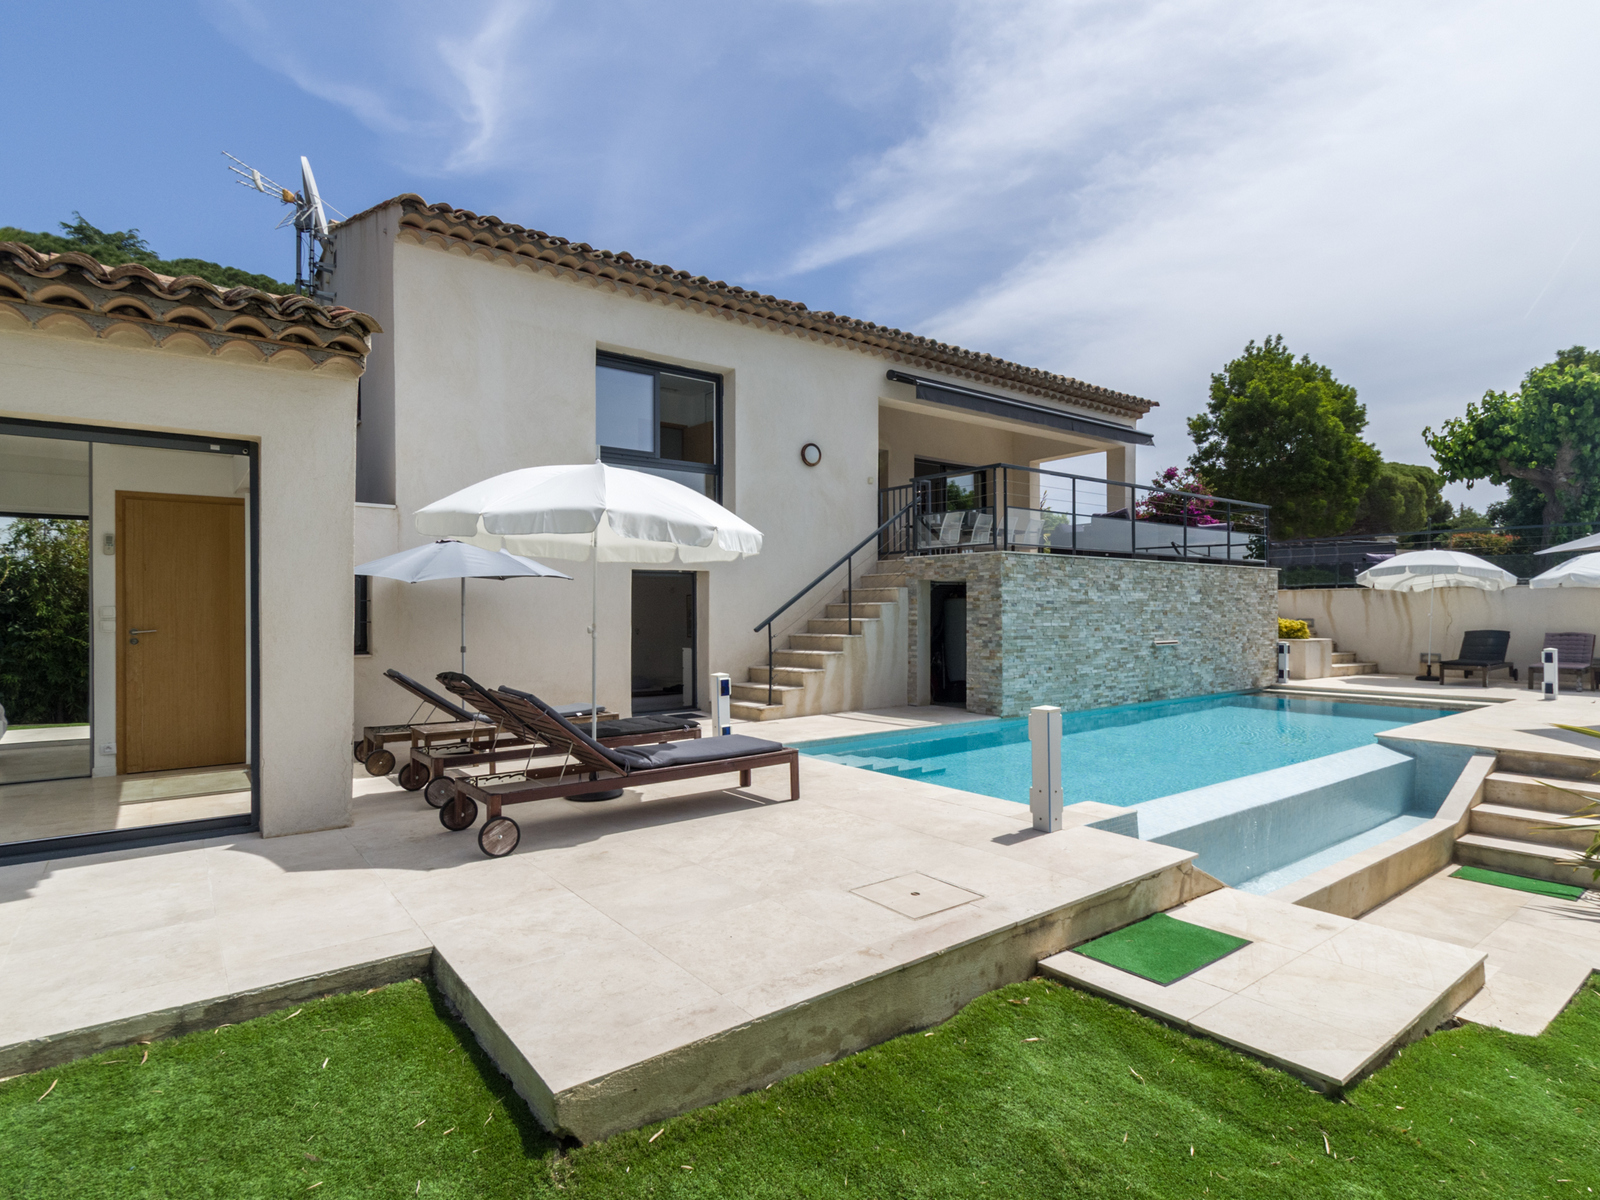 Meyer house, Modern and  luxury villa in Sainte-Maxime, on the Cote d'Azur, France  with heated pool for 8 persons...